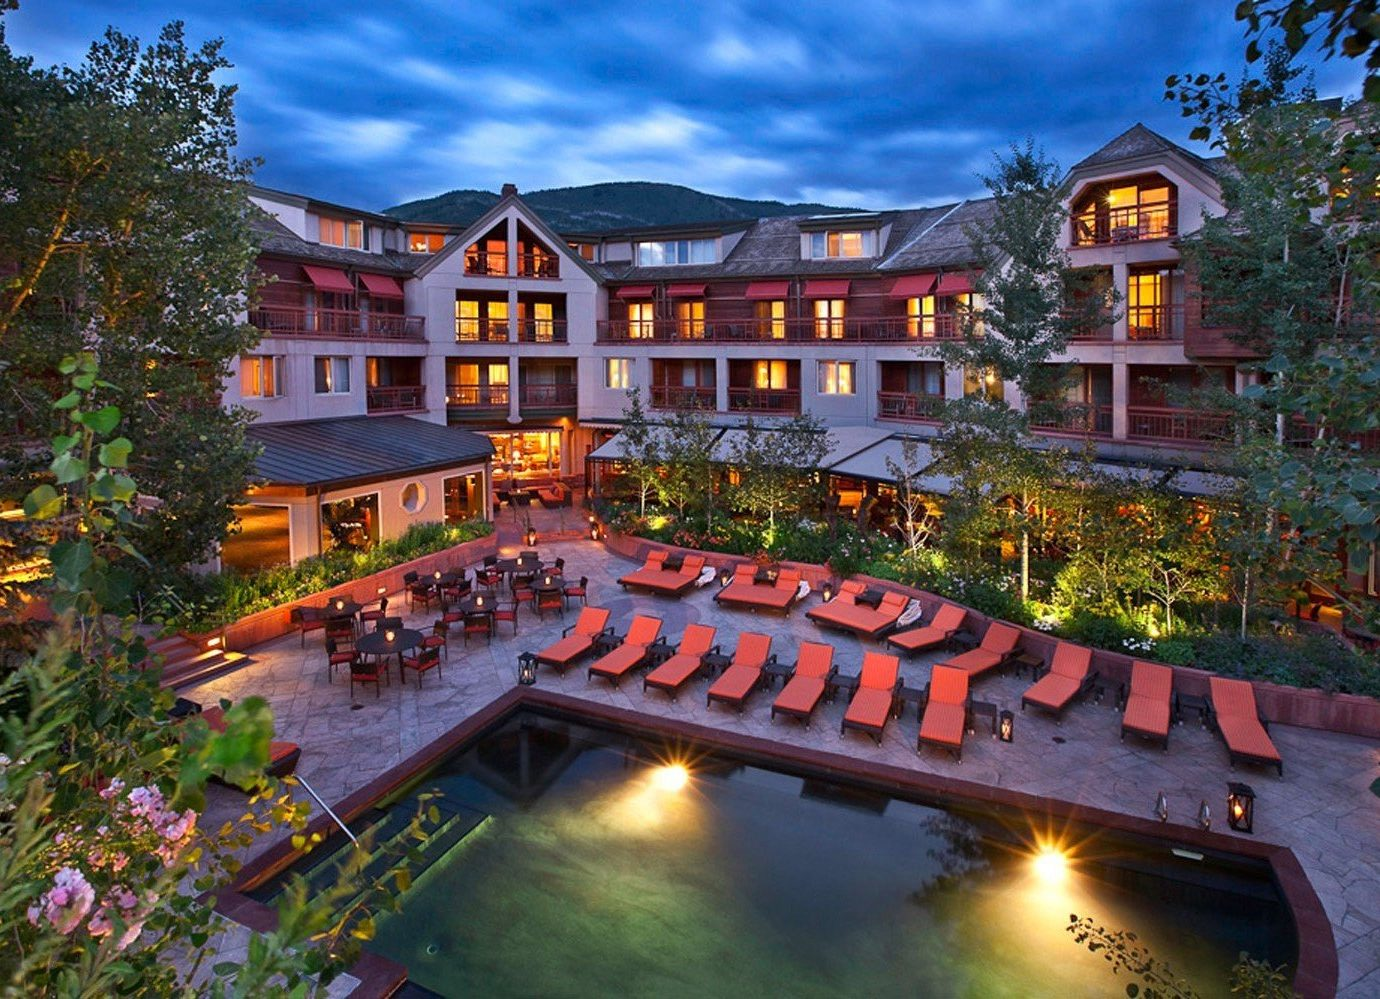 Mountains + Skiing Trip Ideas tree sky outdoor property estate house building Resort mansion home residential area backyard landscape lighting swimming pool colorful